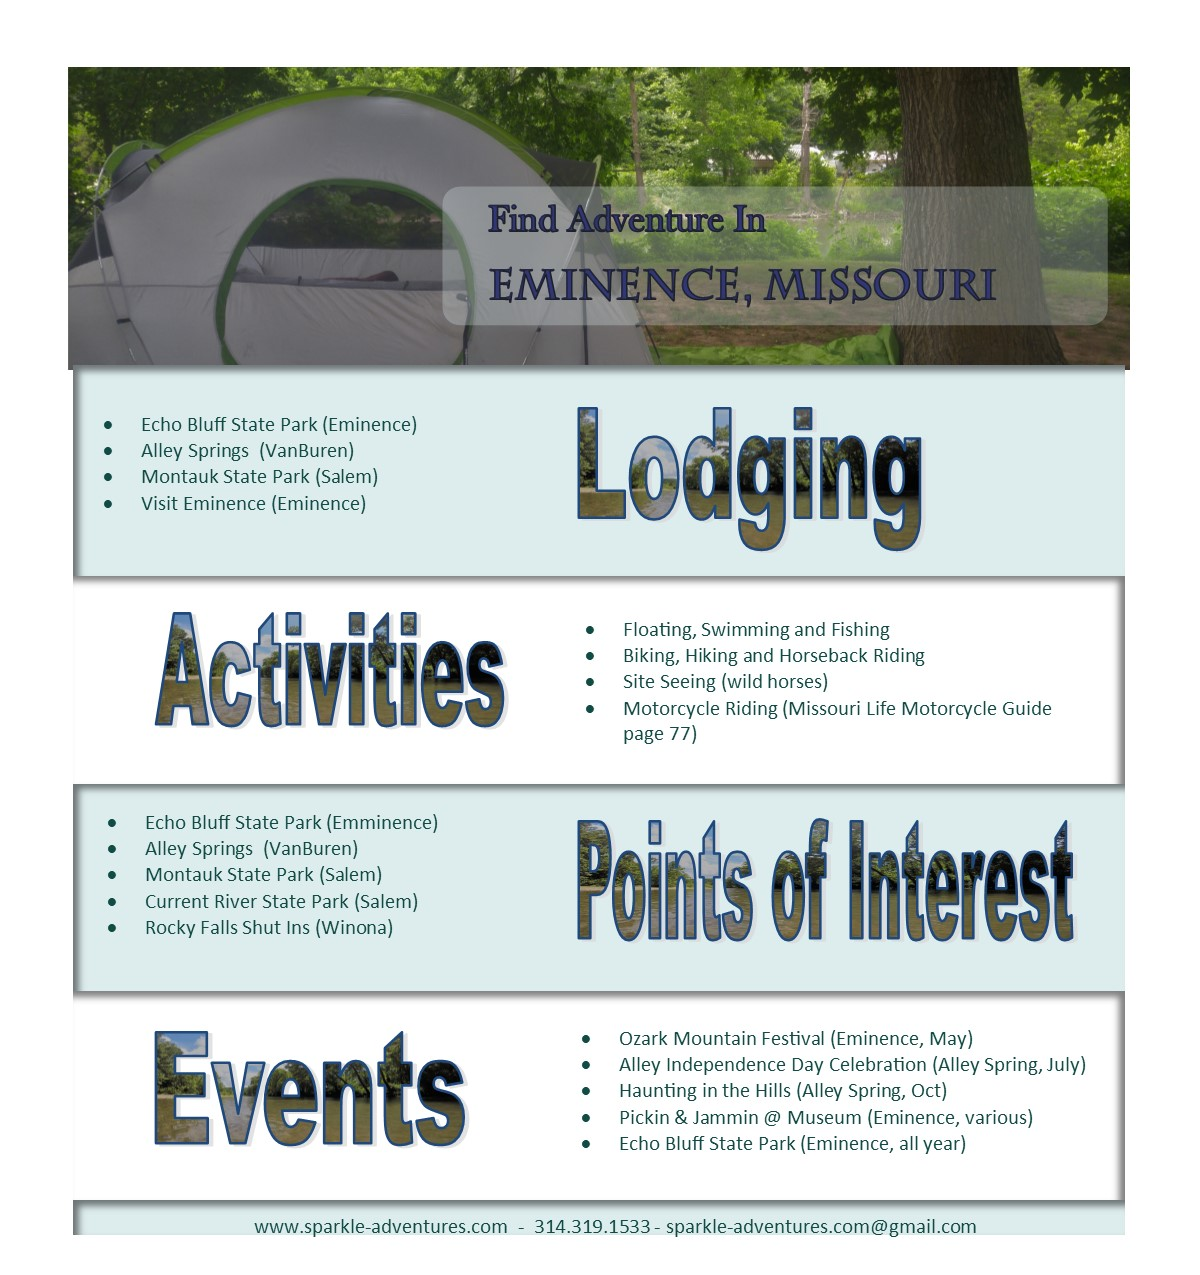 Find Adventure In Eminence, Missouri - Sparkle Adventures